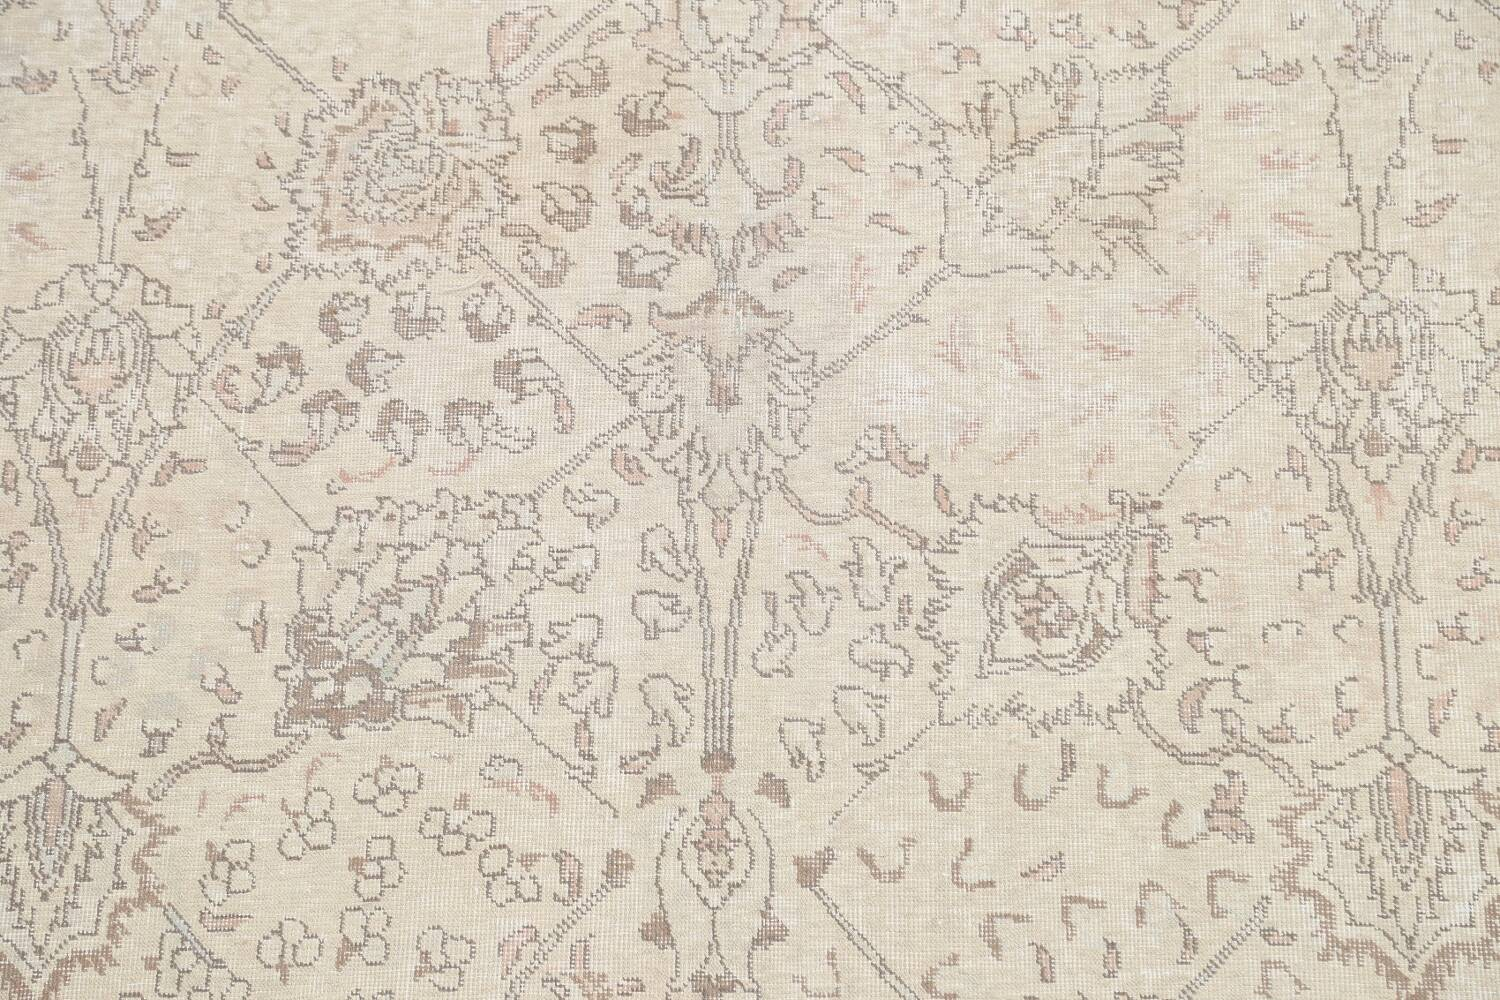 Floral Muted Tabriz Persian Area Rug 7x7 Square image 4